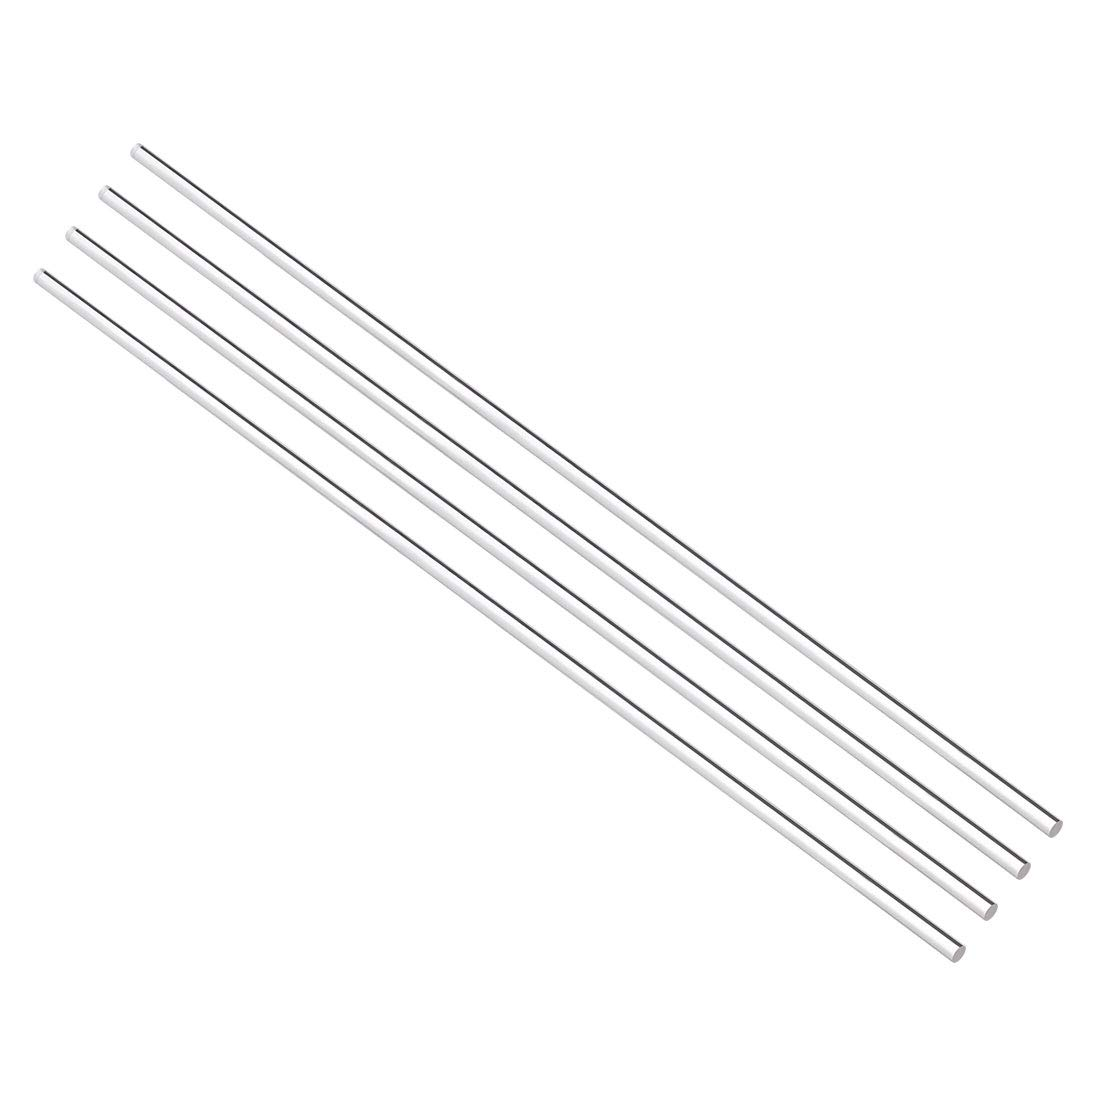 sourcing map 4mmx250mm Round Shape Solid Acrylic Rod PMMA Extruded Bar Clear 4Pcs